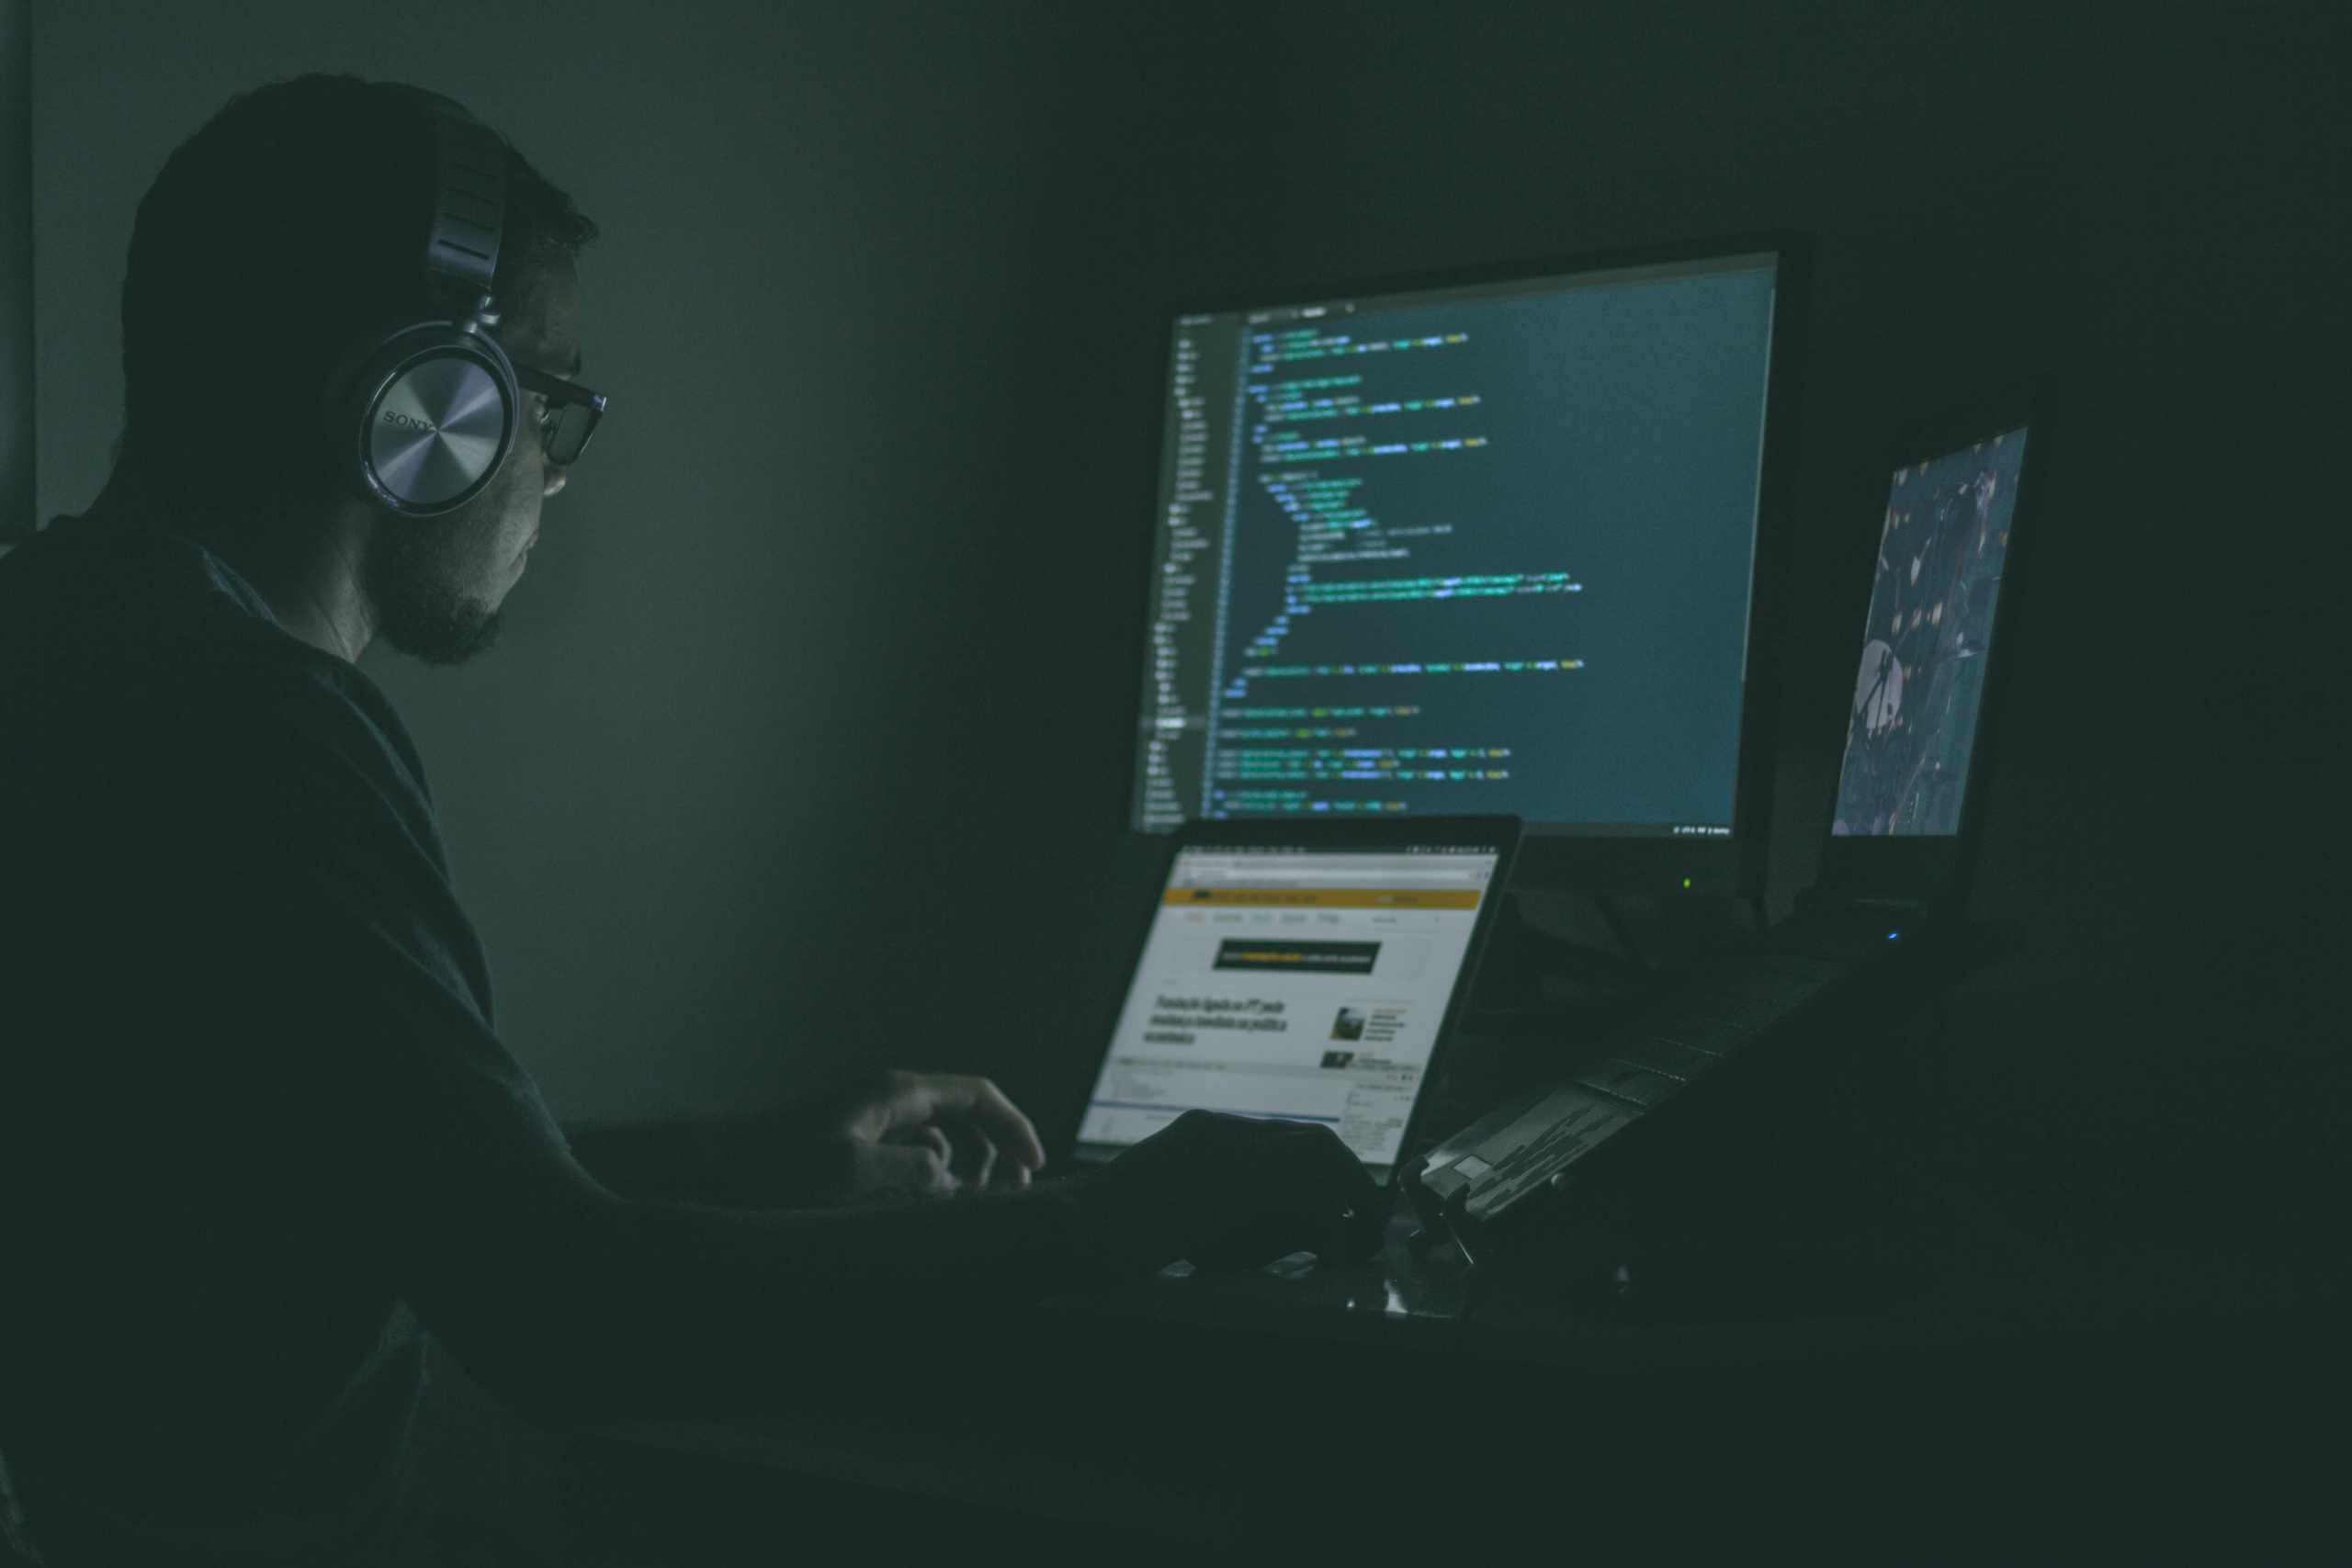 Qualification in Cyber Security